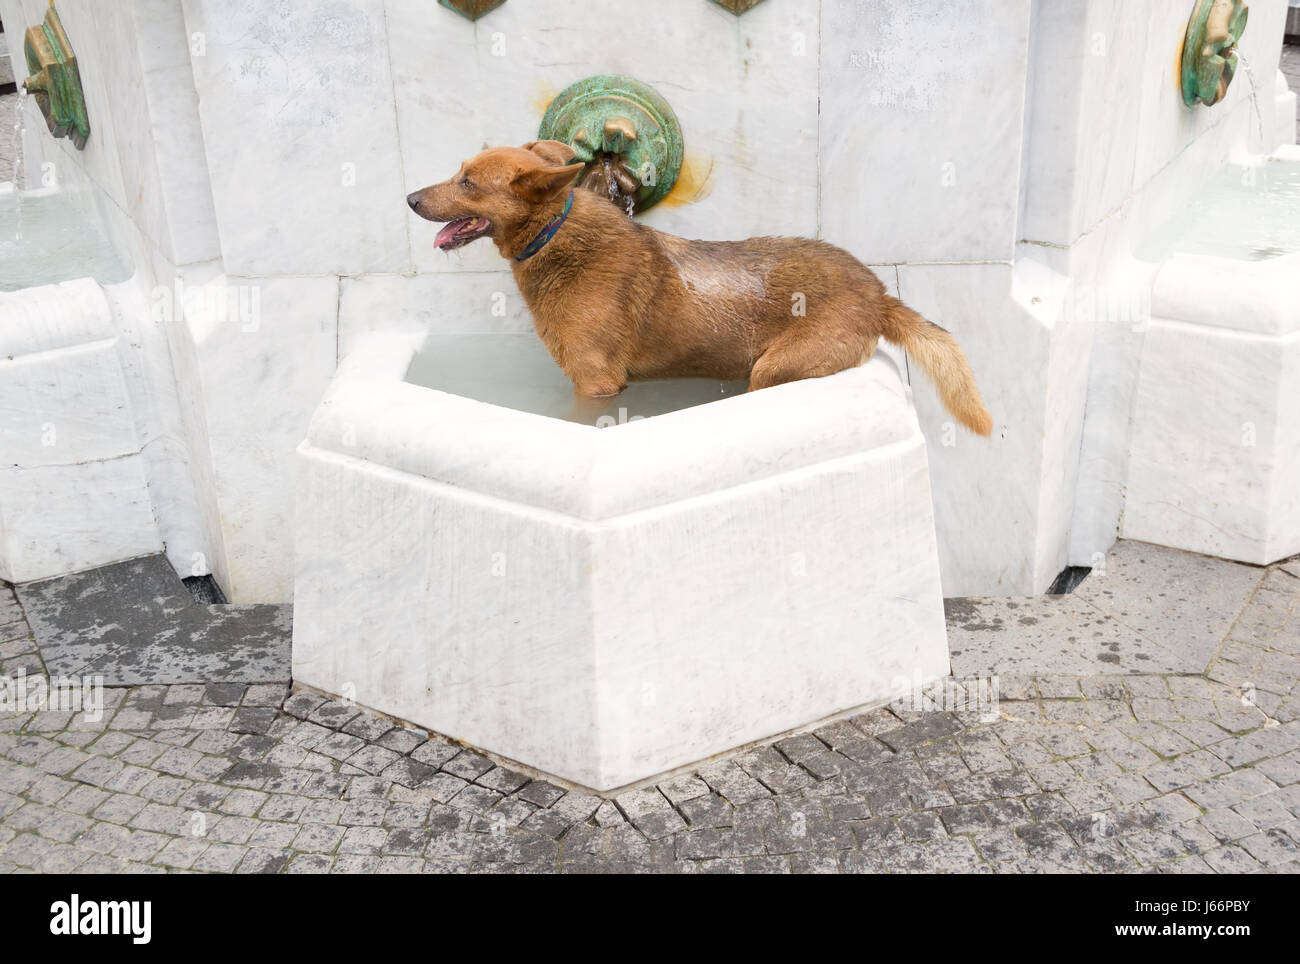 Wet dog in the fountain cooling down on hot summer day - Stock Image